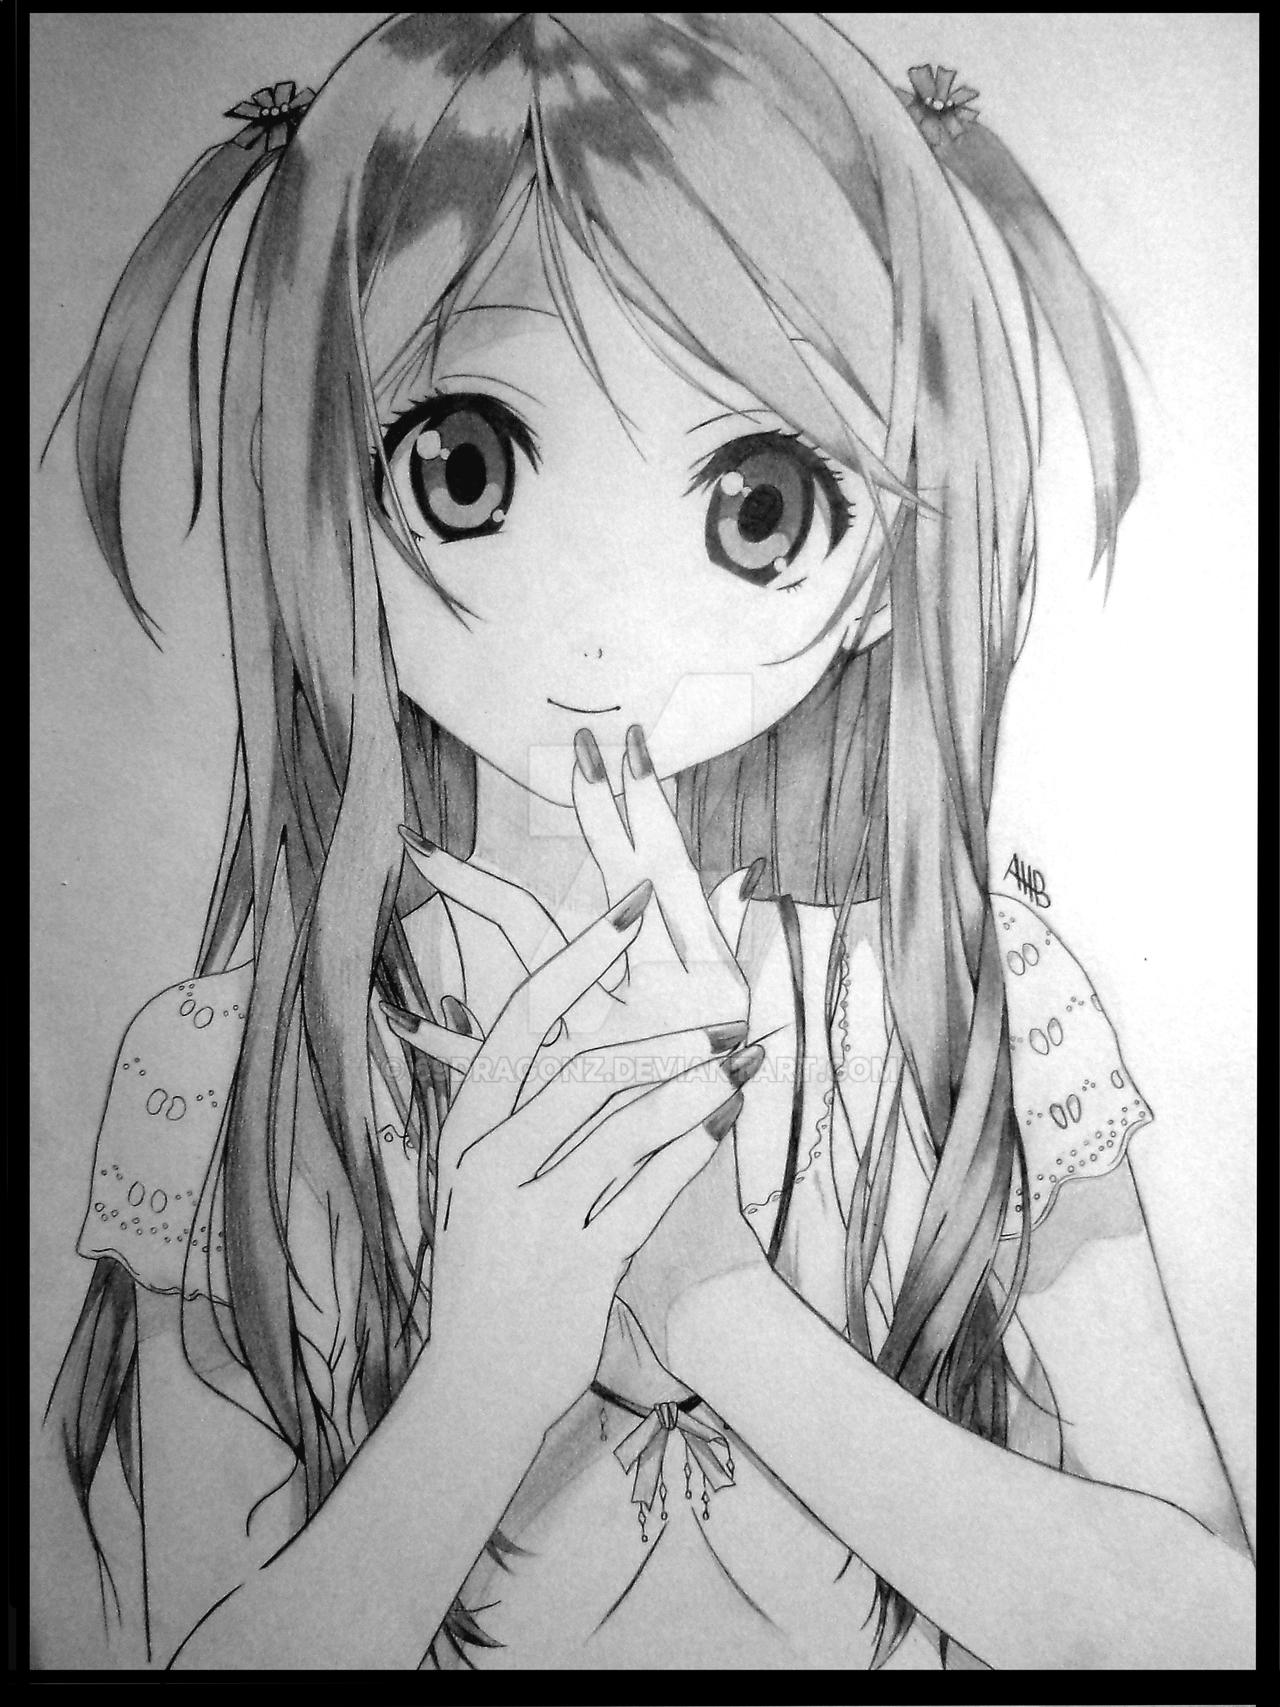 drawing of a cute girl by 69dragonz on DeviantArt